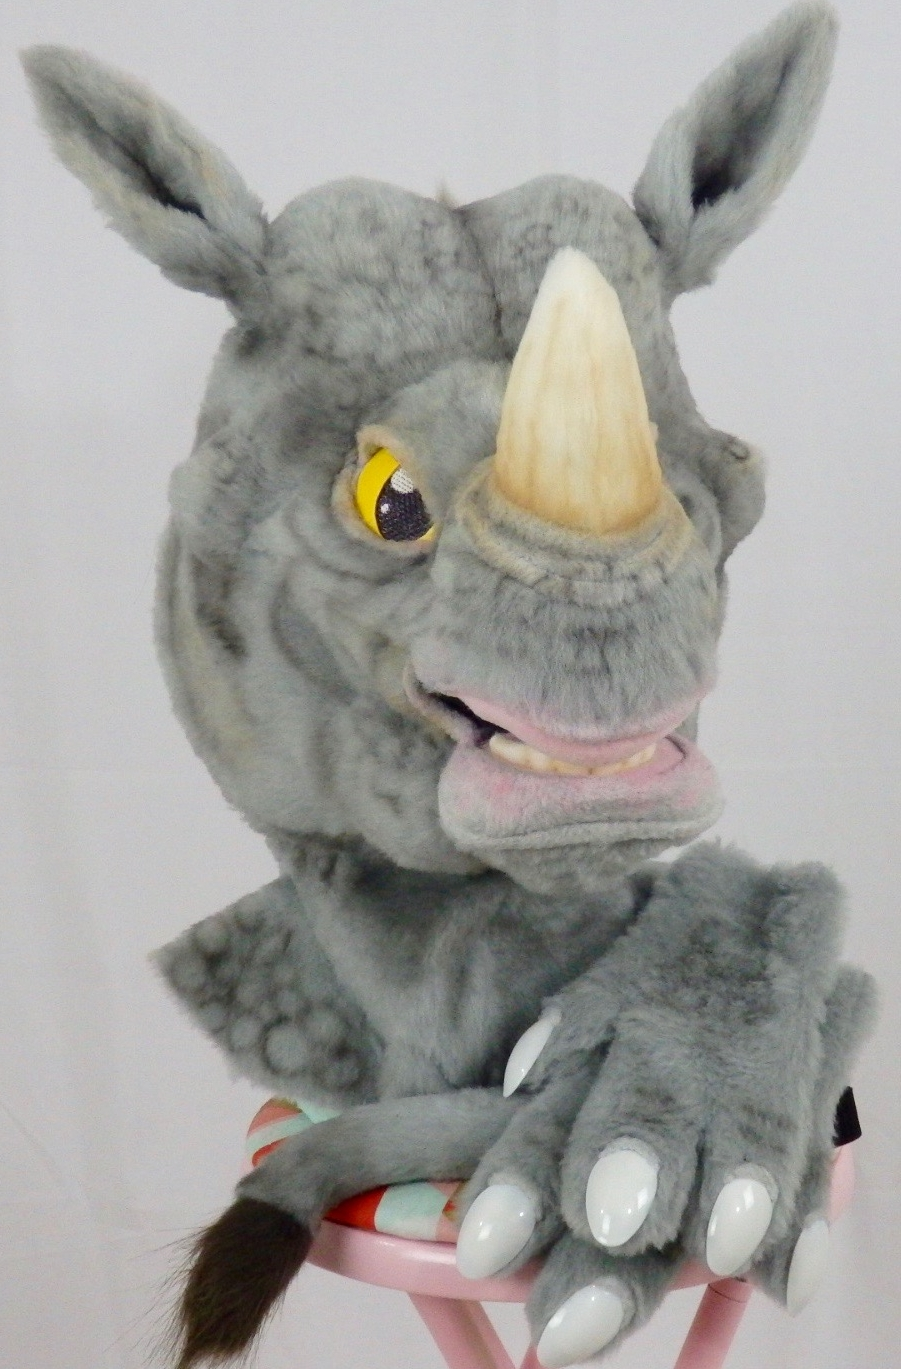 This Rhino partial was donated to Anthrocon's 2017 Charity Auction to benefit Hope Haven.